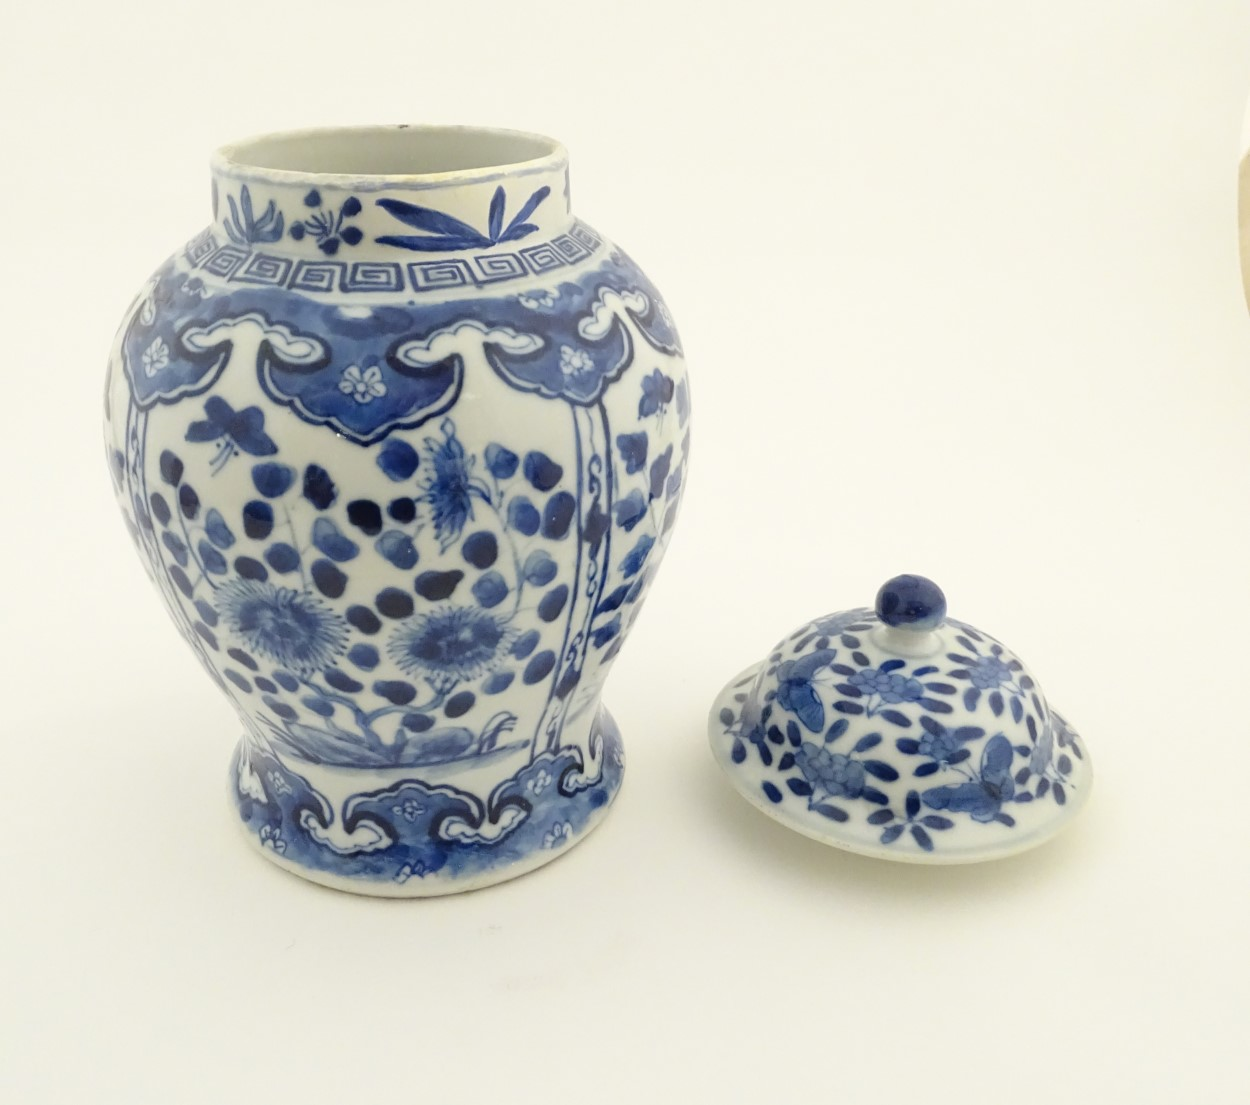 Lot 26 - A Chinese blue and white ginger jar with panelled floral and butterfly decoration,